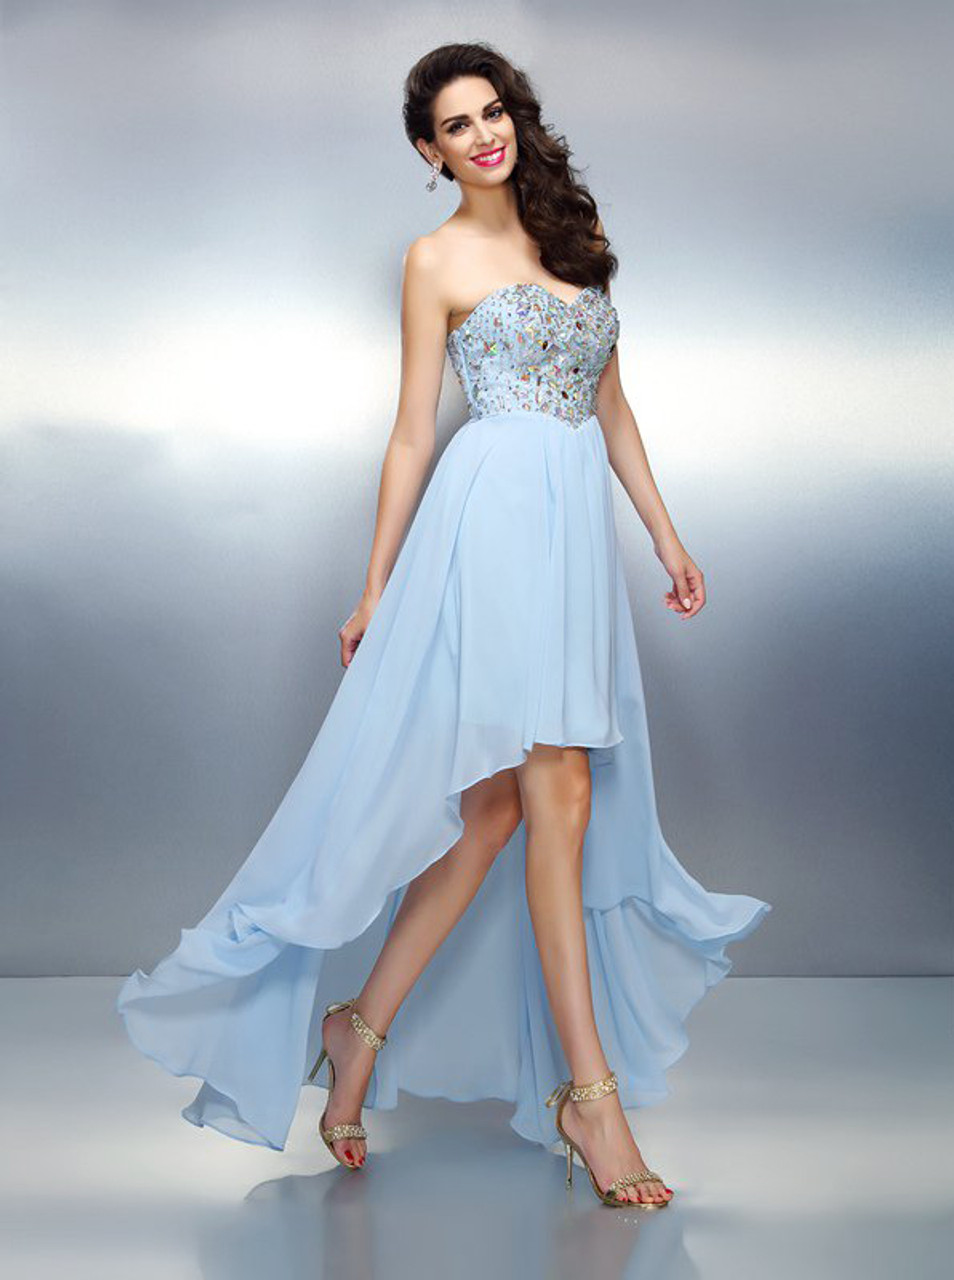 468302bed SkyBlue Sweetheart Homecoming Dresses,High Low Prom Dress,11448 -  Landress.co.uk